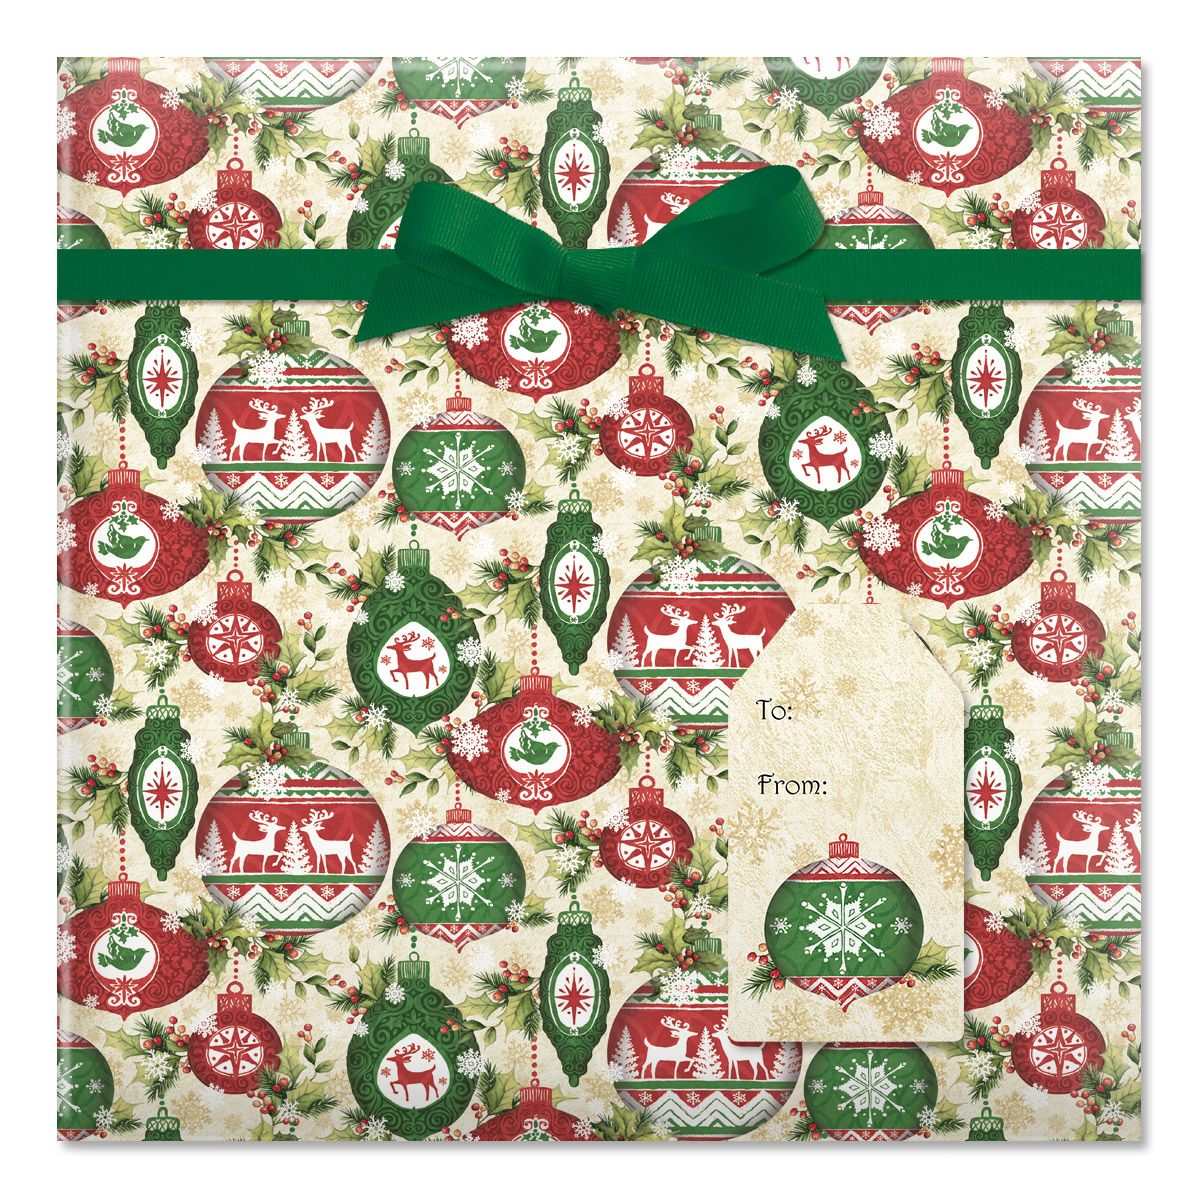 Ornaments on Garland Jumbo Rolled Gift Wrap and Labels